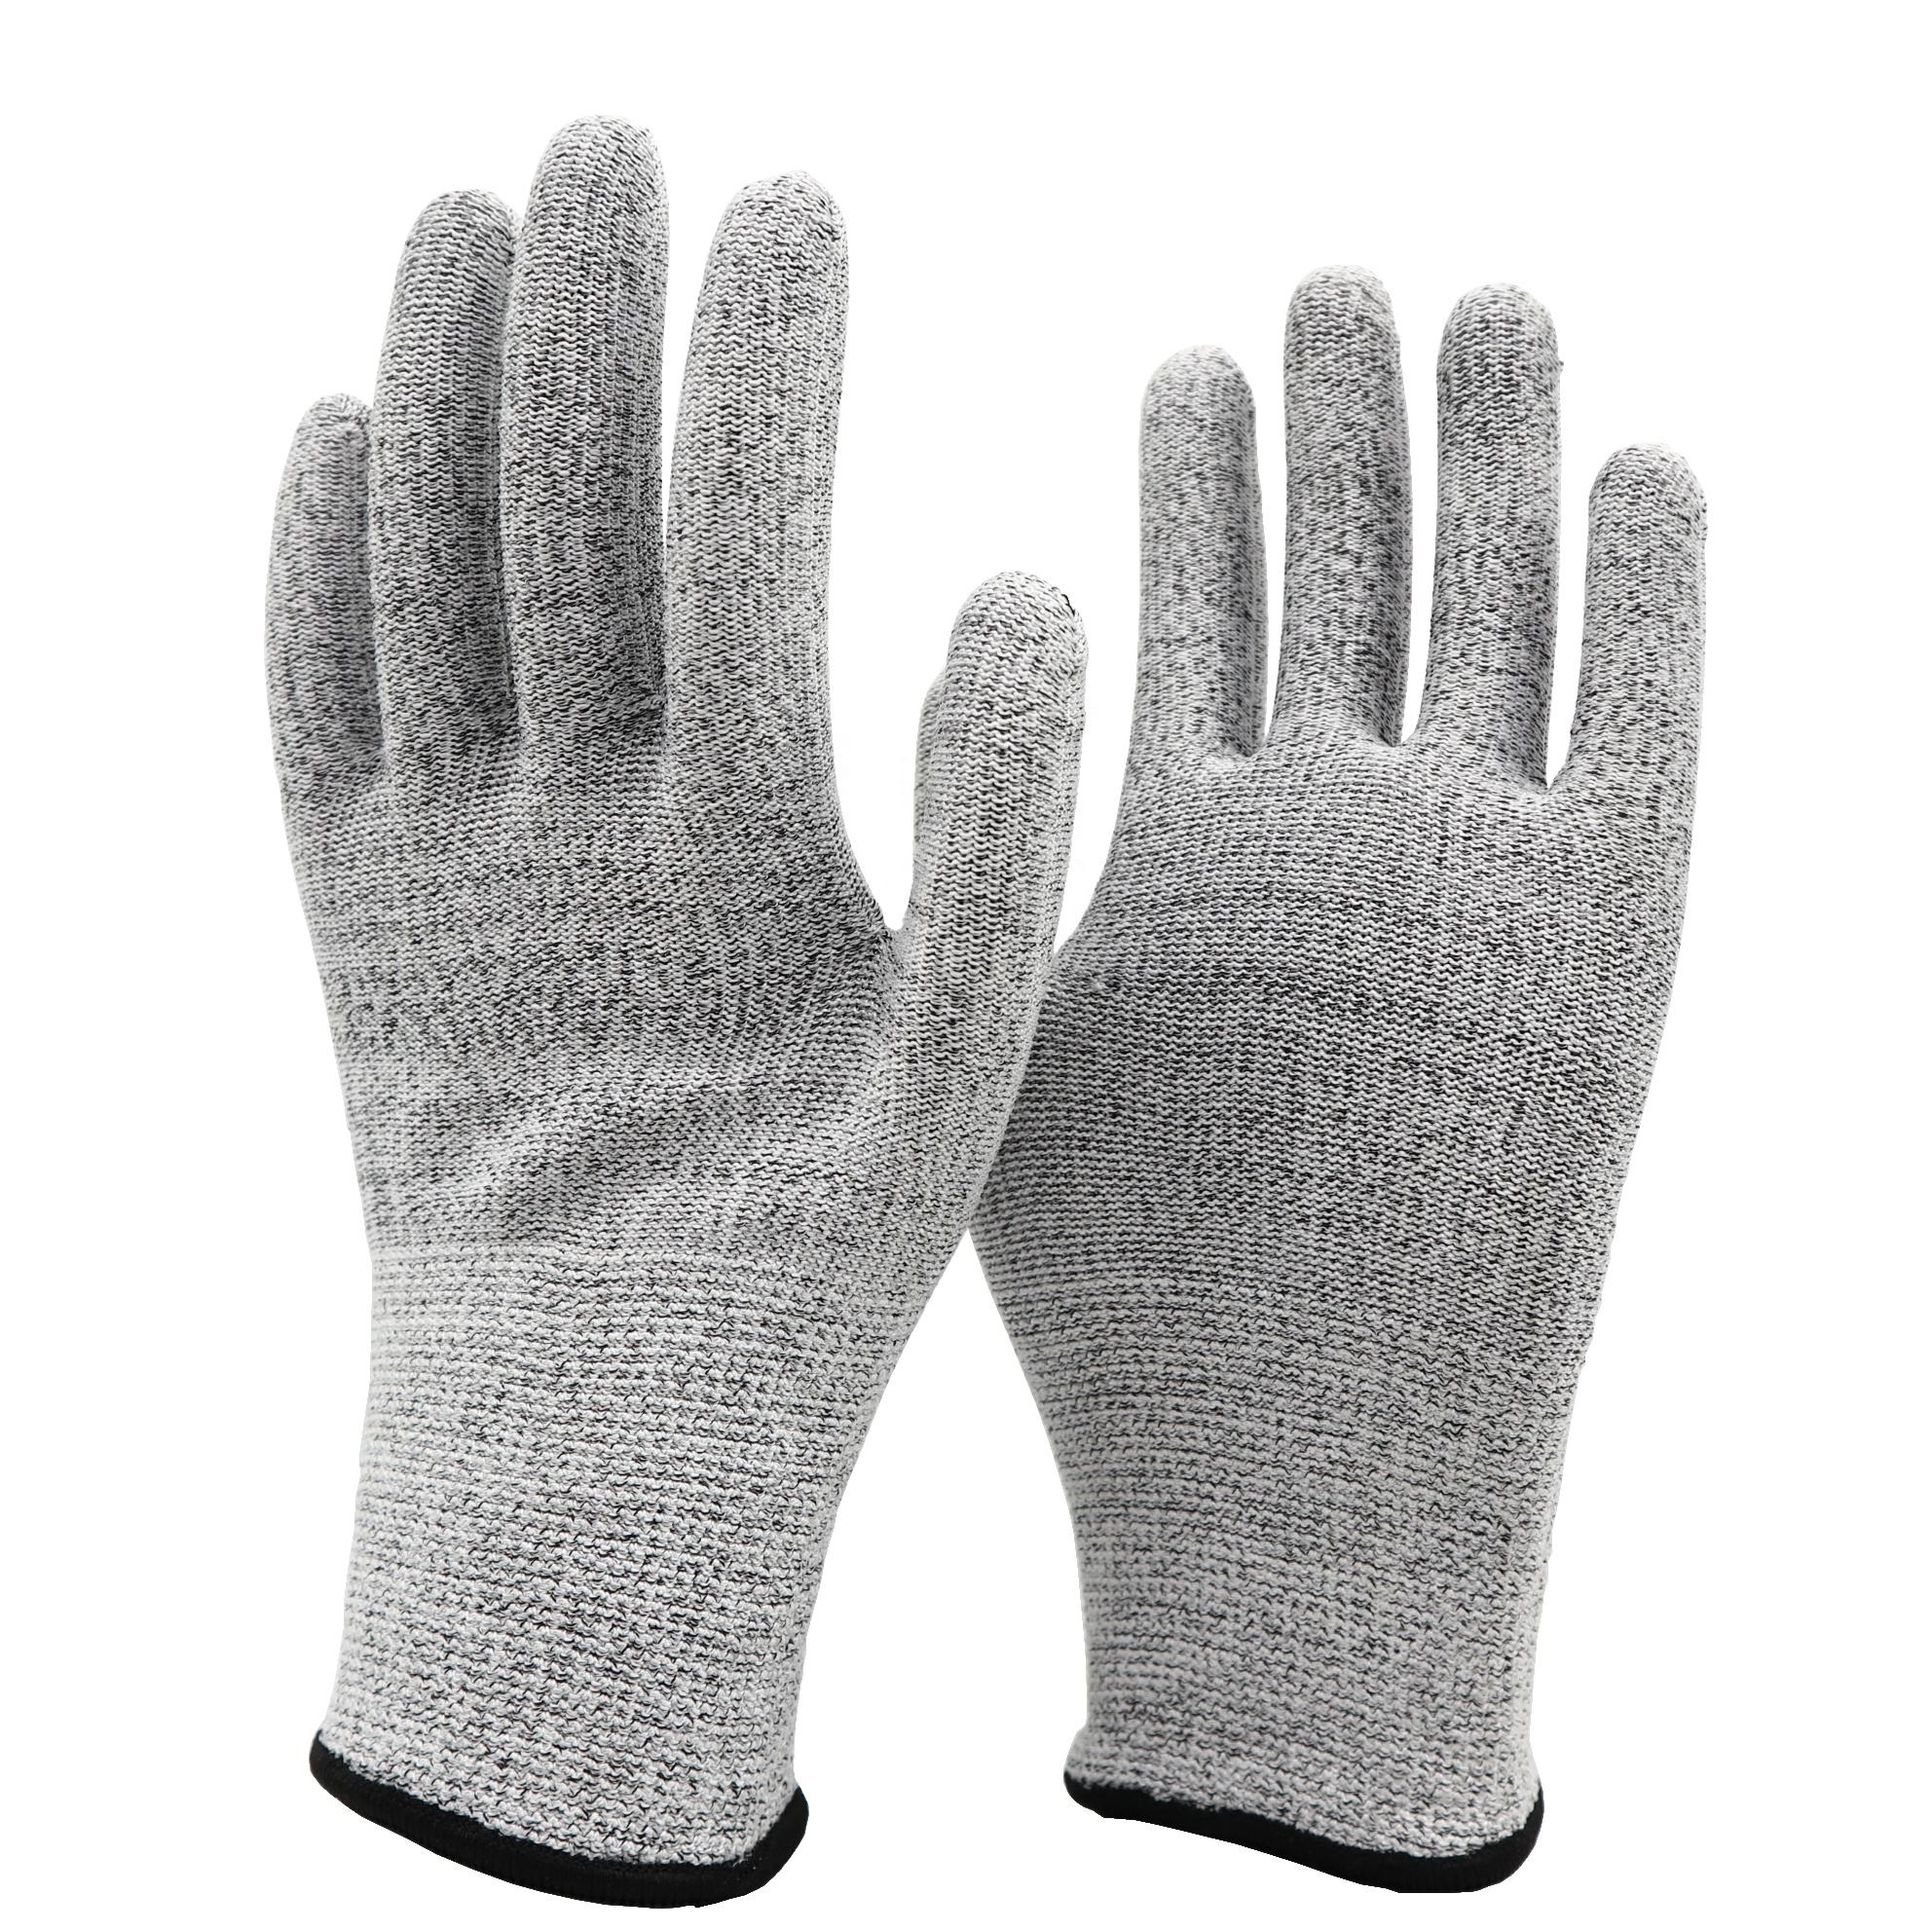 Industrial Work Wearing Cheap 13G HPPE Premium Quality Cut Resistant Glove